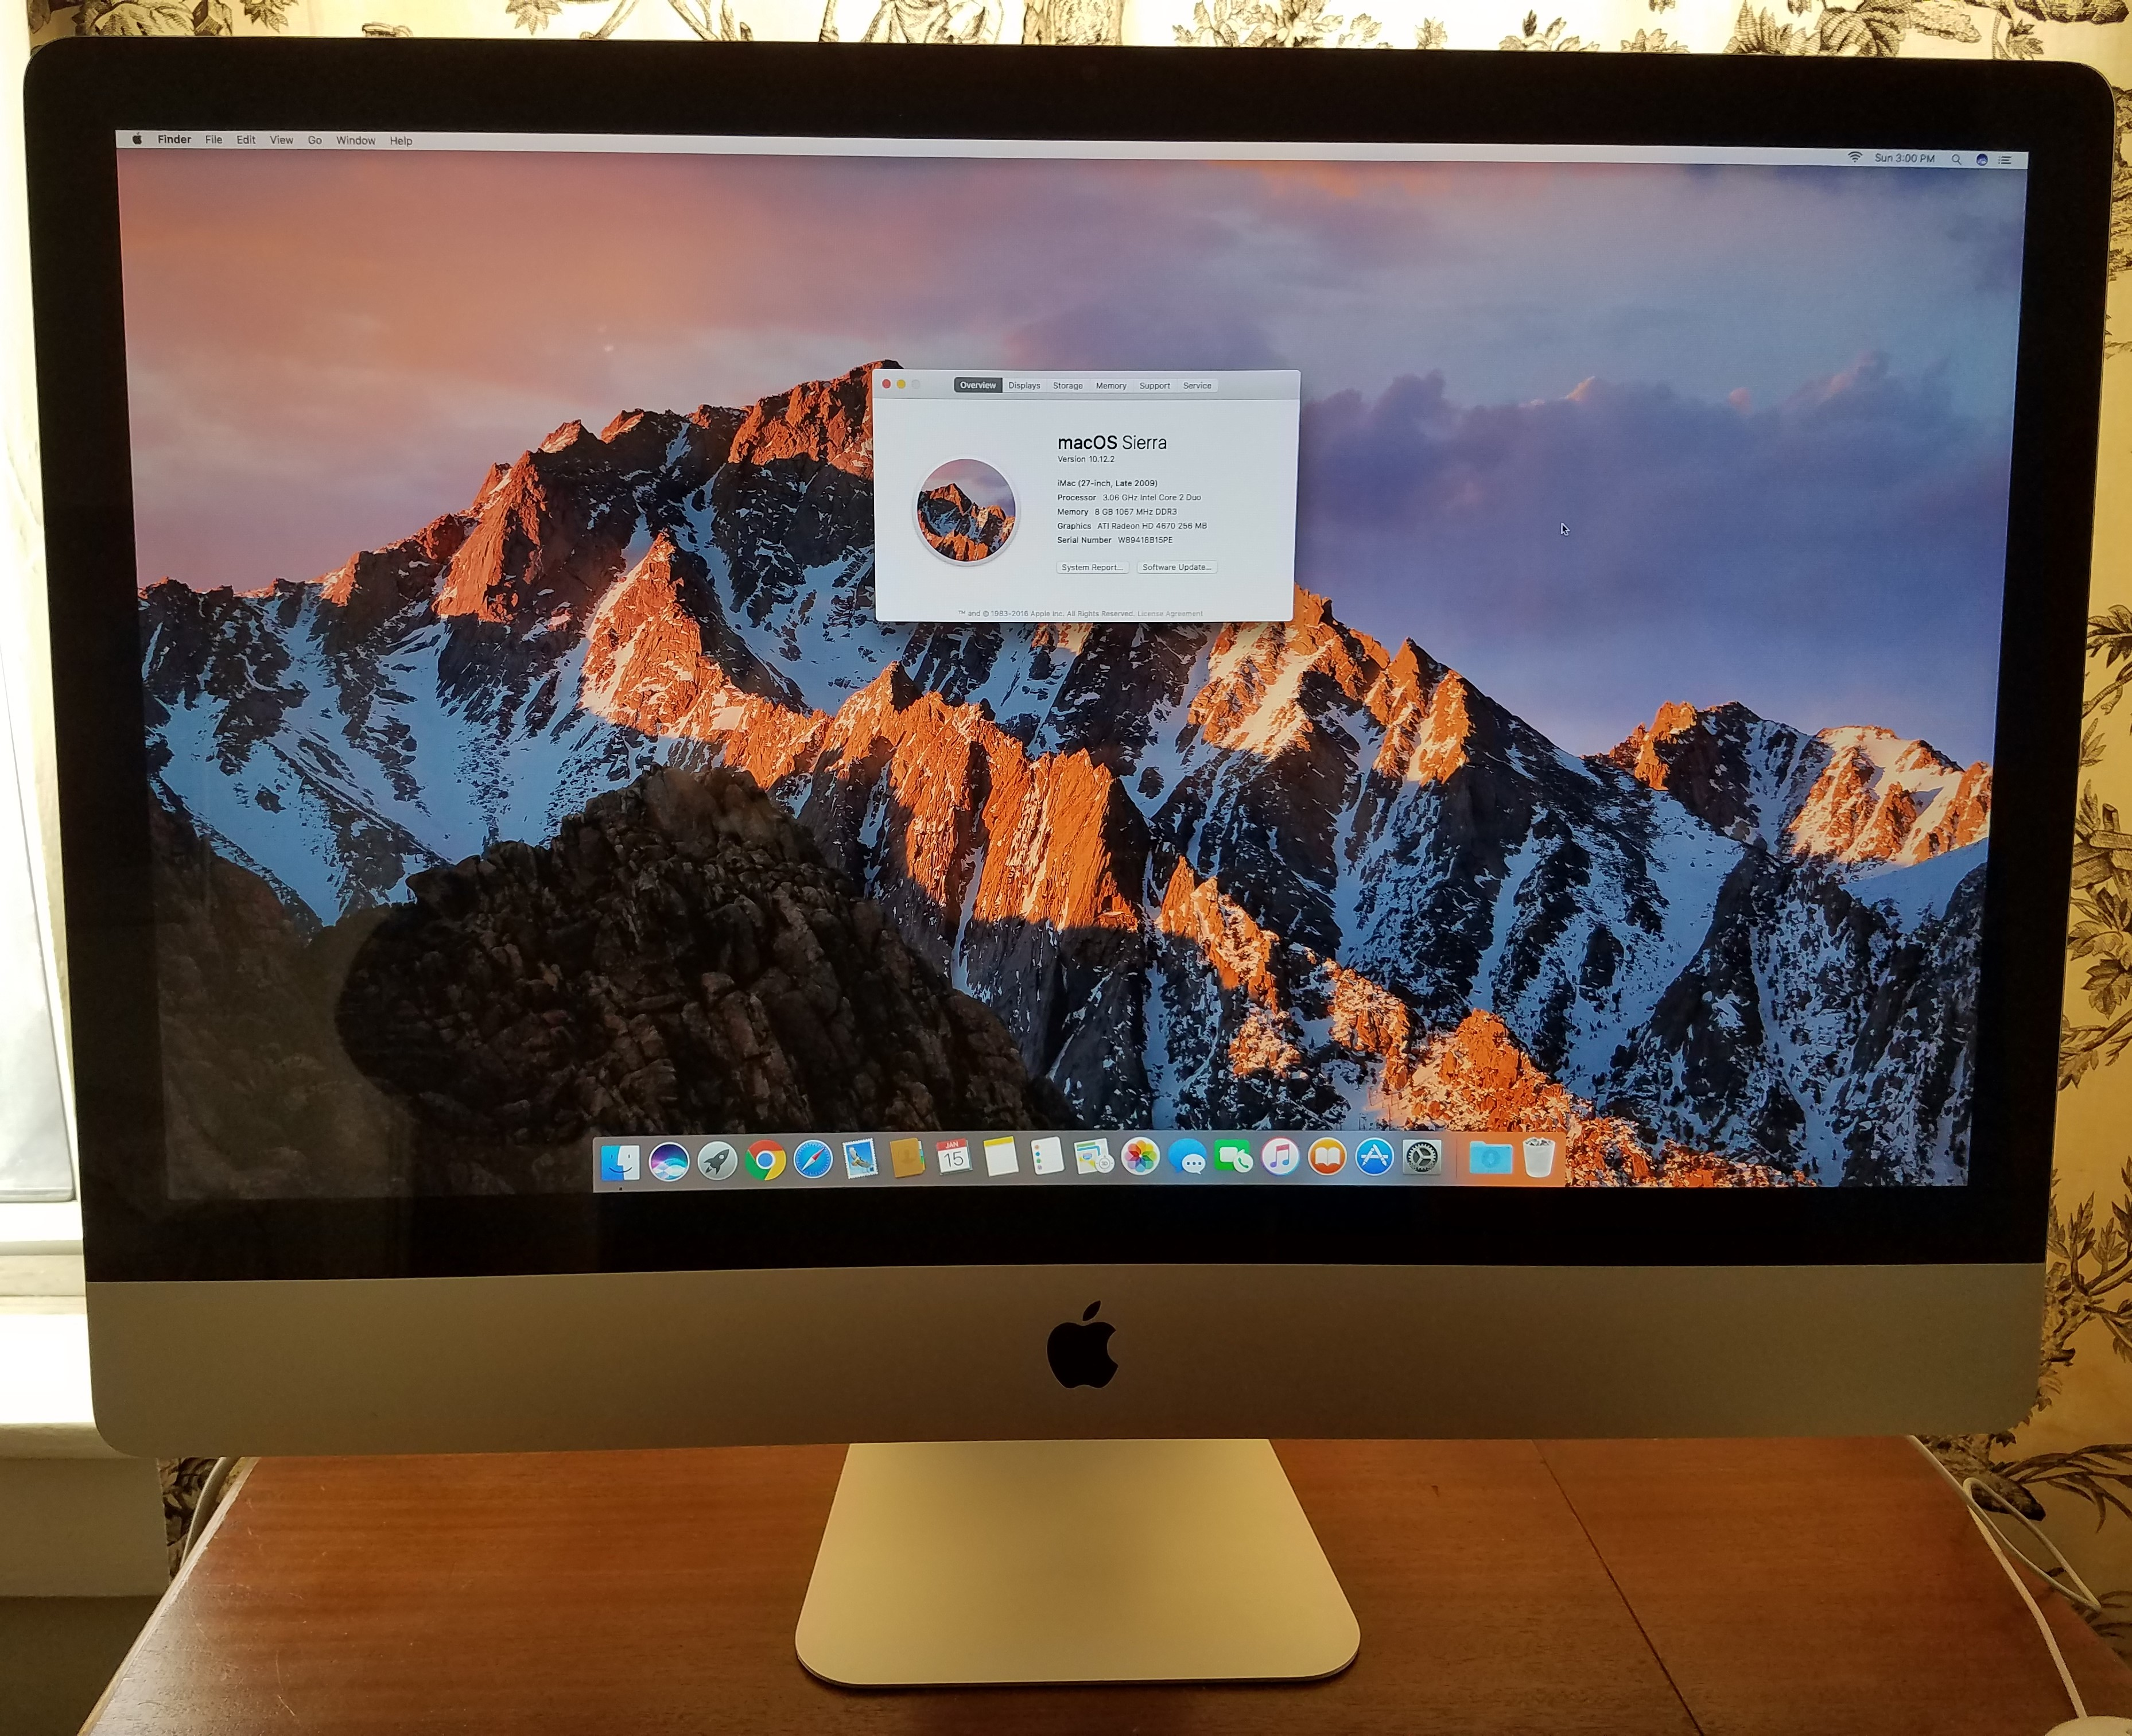 Refurbished Imac 27 Inch Late 2009 For Sale